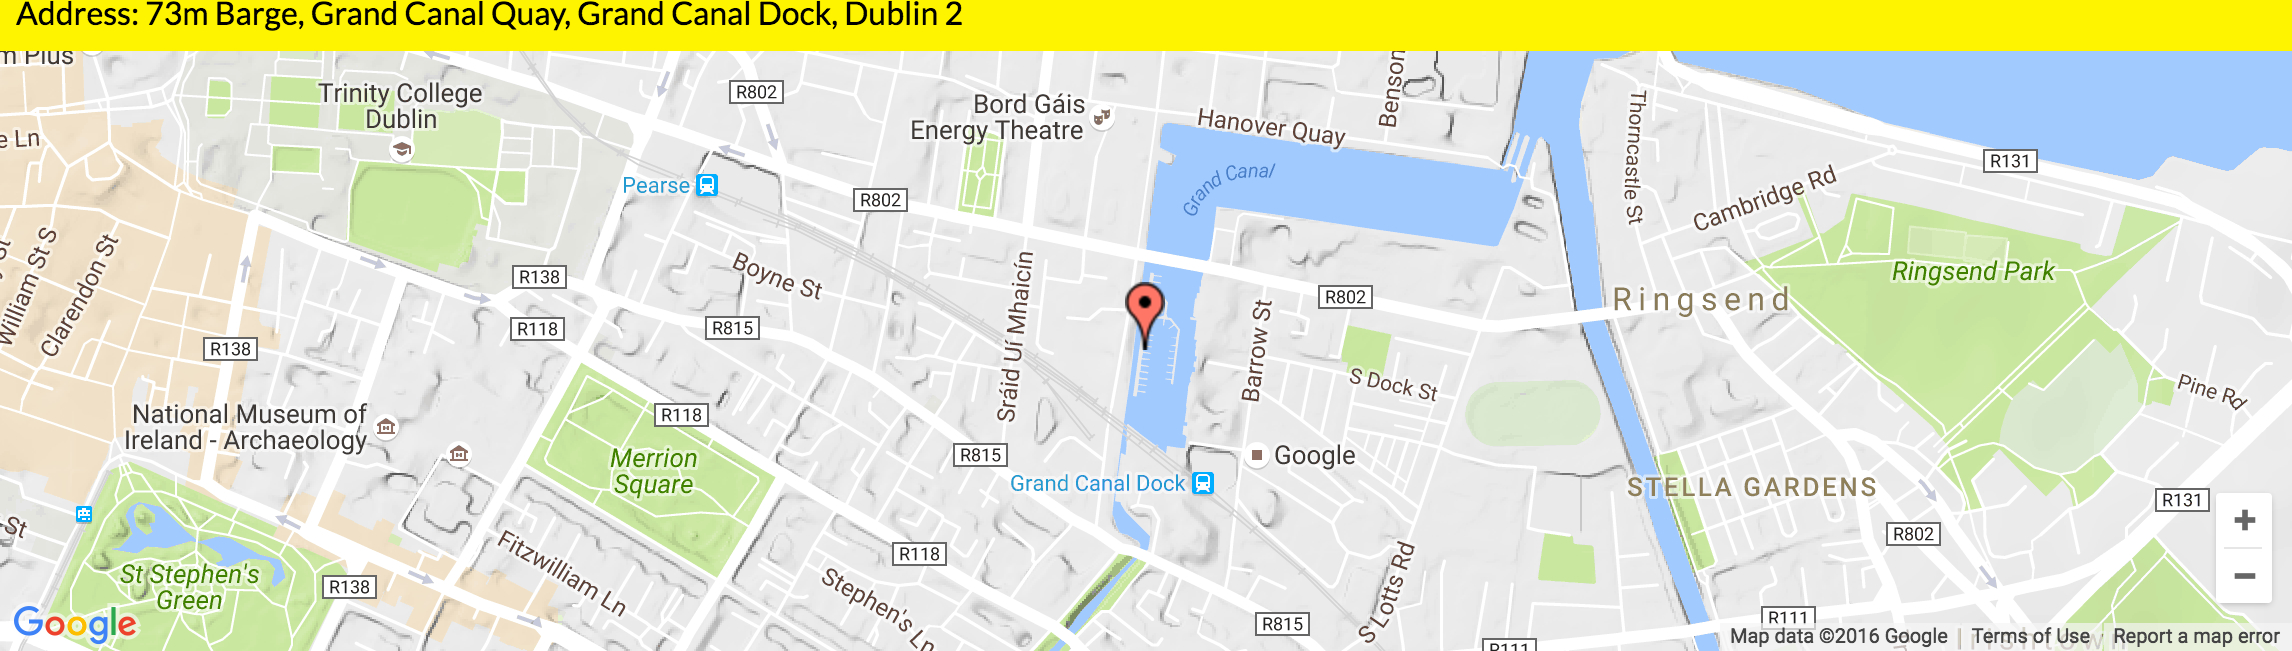 on board and nearby 73m barge grand canal dock dublin 2